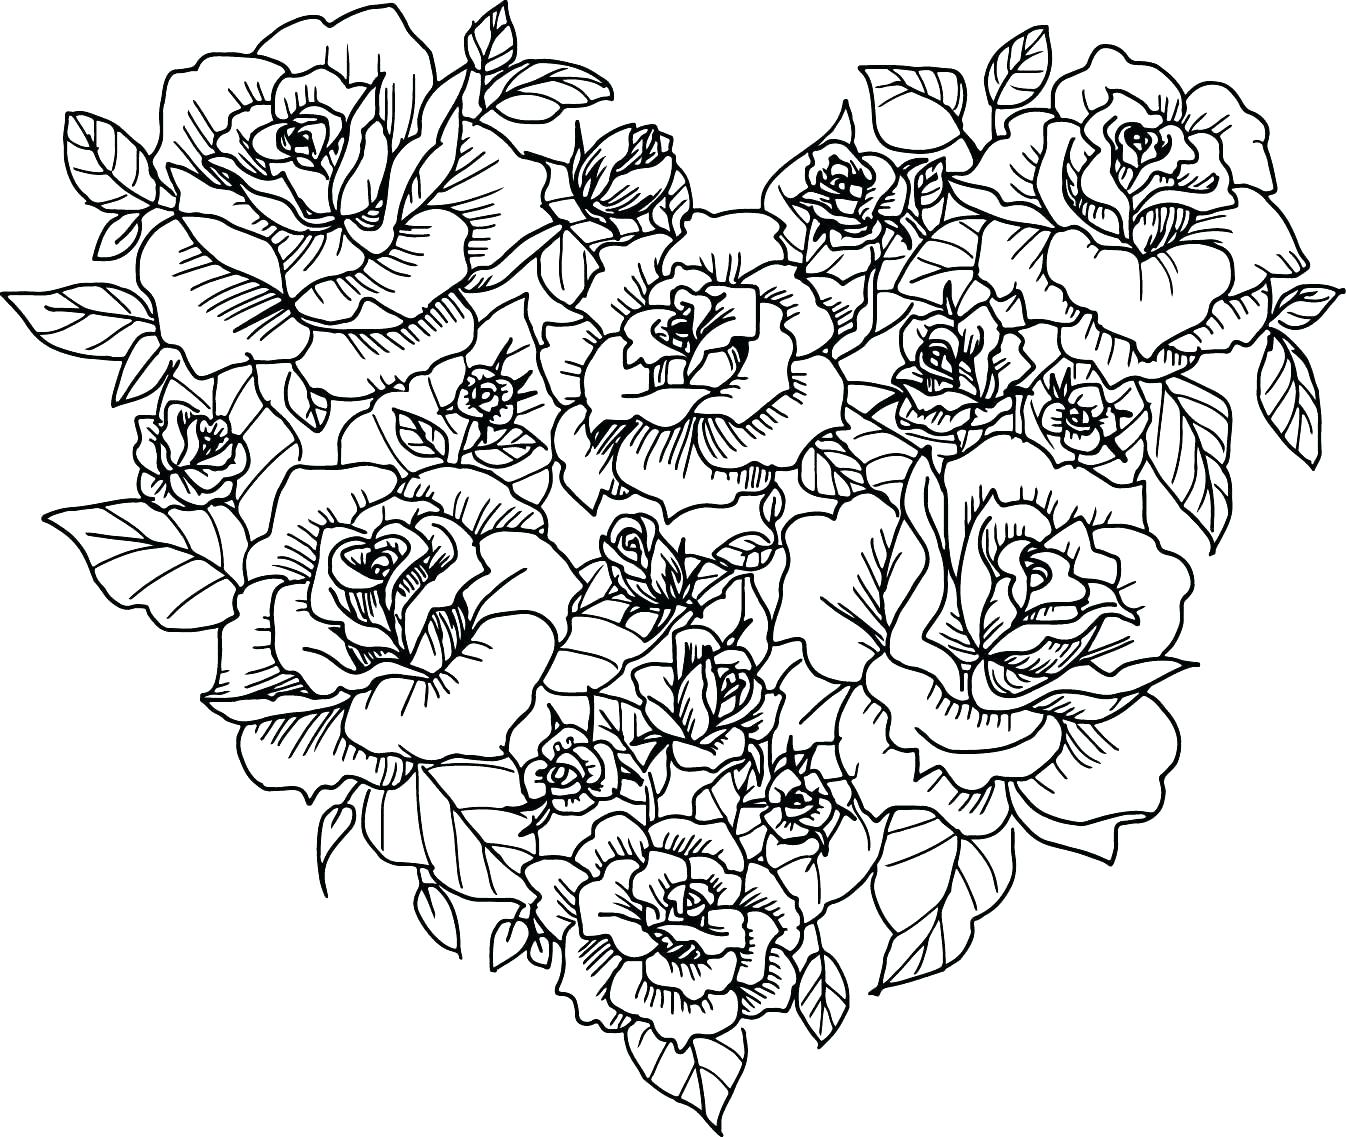 Free Printable Heart Coloring Pages For Kids | Heart coloring ... | 1137x1346